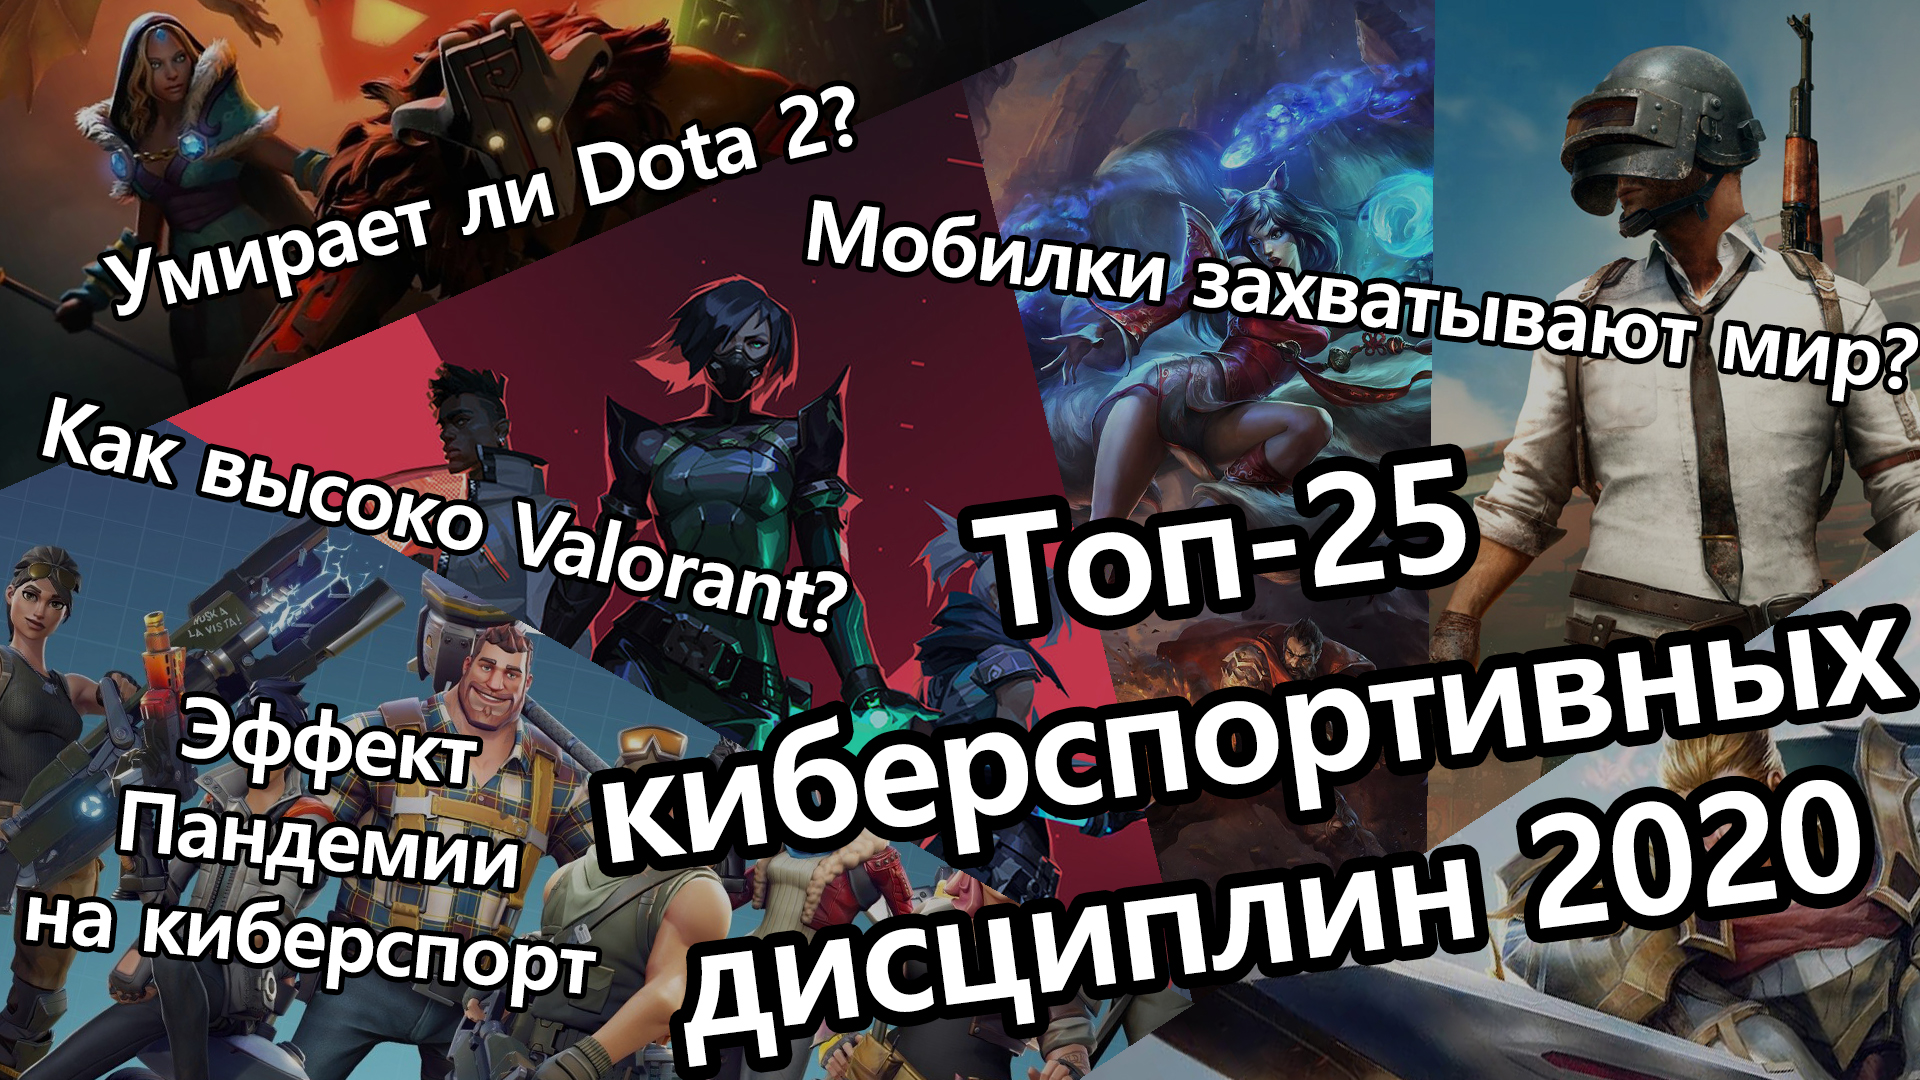 PUBG Mobile, PUBG, Call of Duty: Warzone, League of Legends, Counter-Strike: Global Offensive, Arena of Valor, Dota 2, Free Fire, Fortnite, Valorant